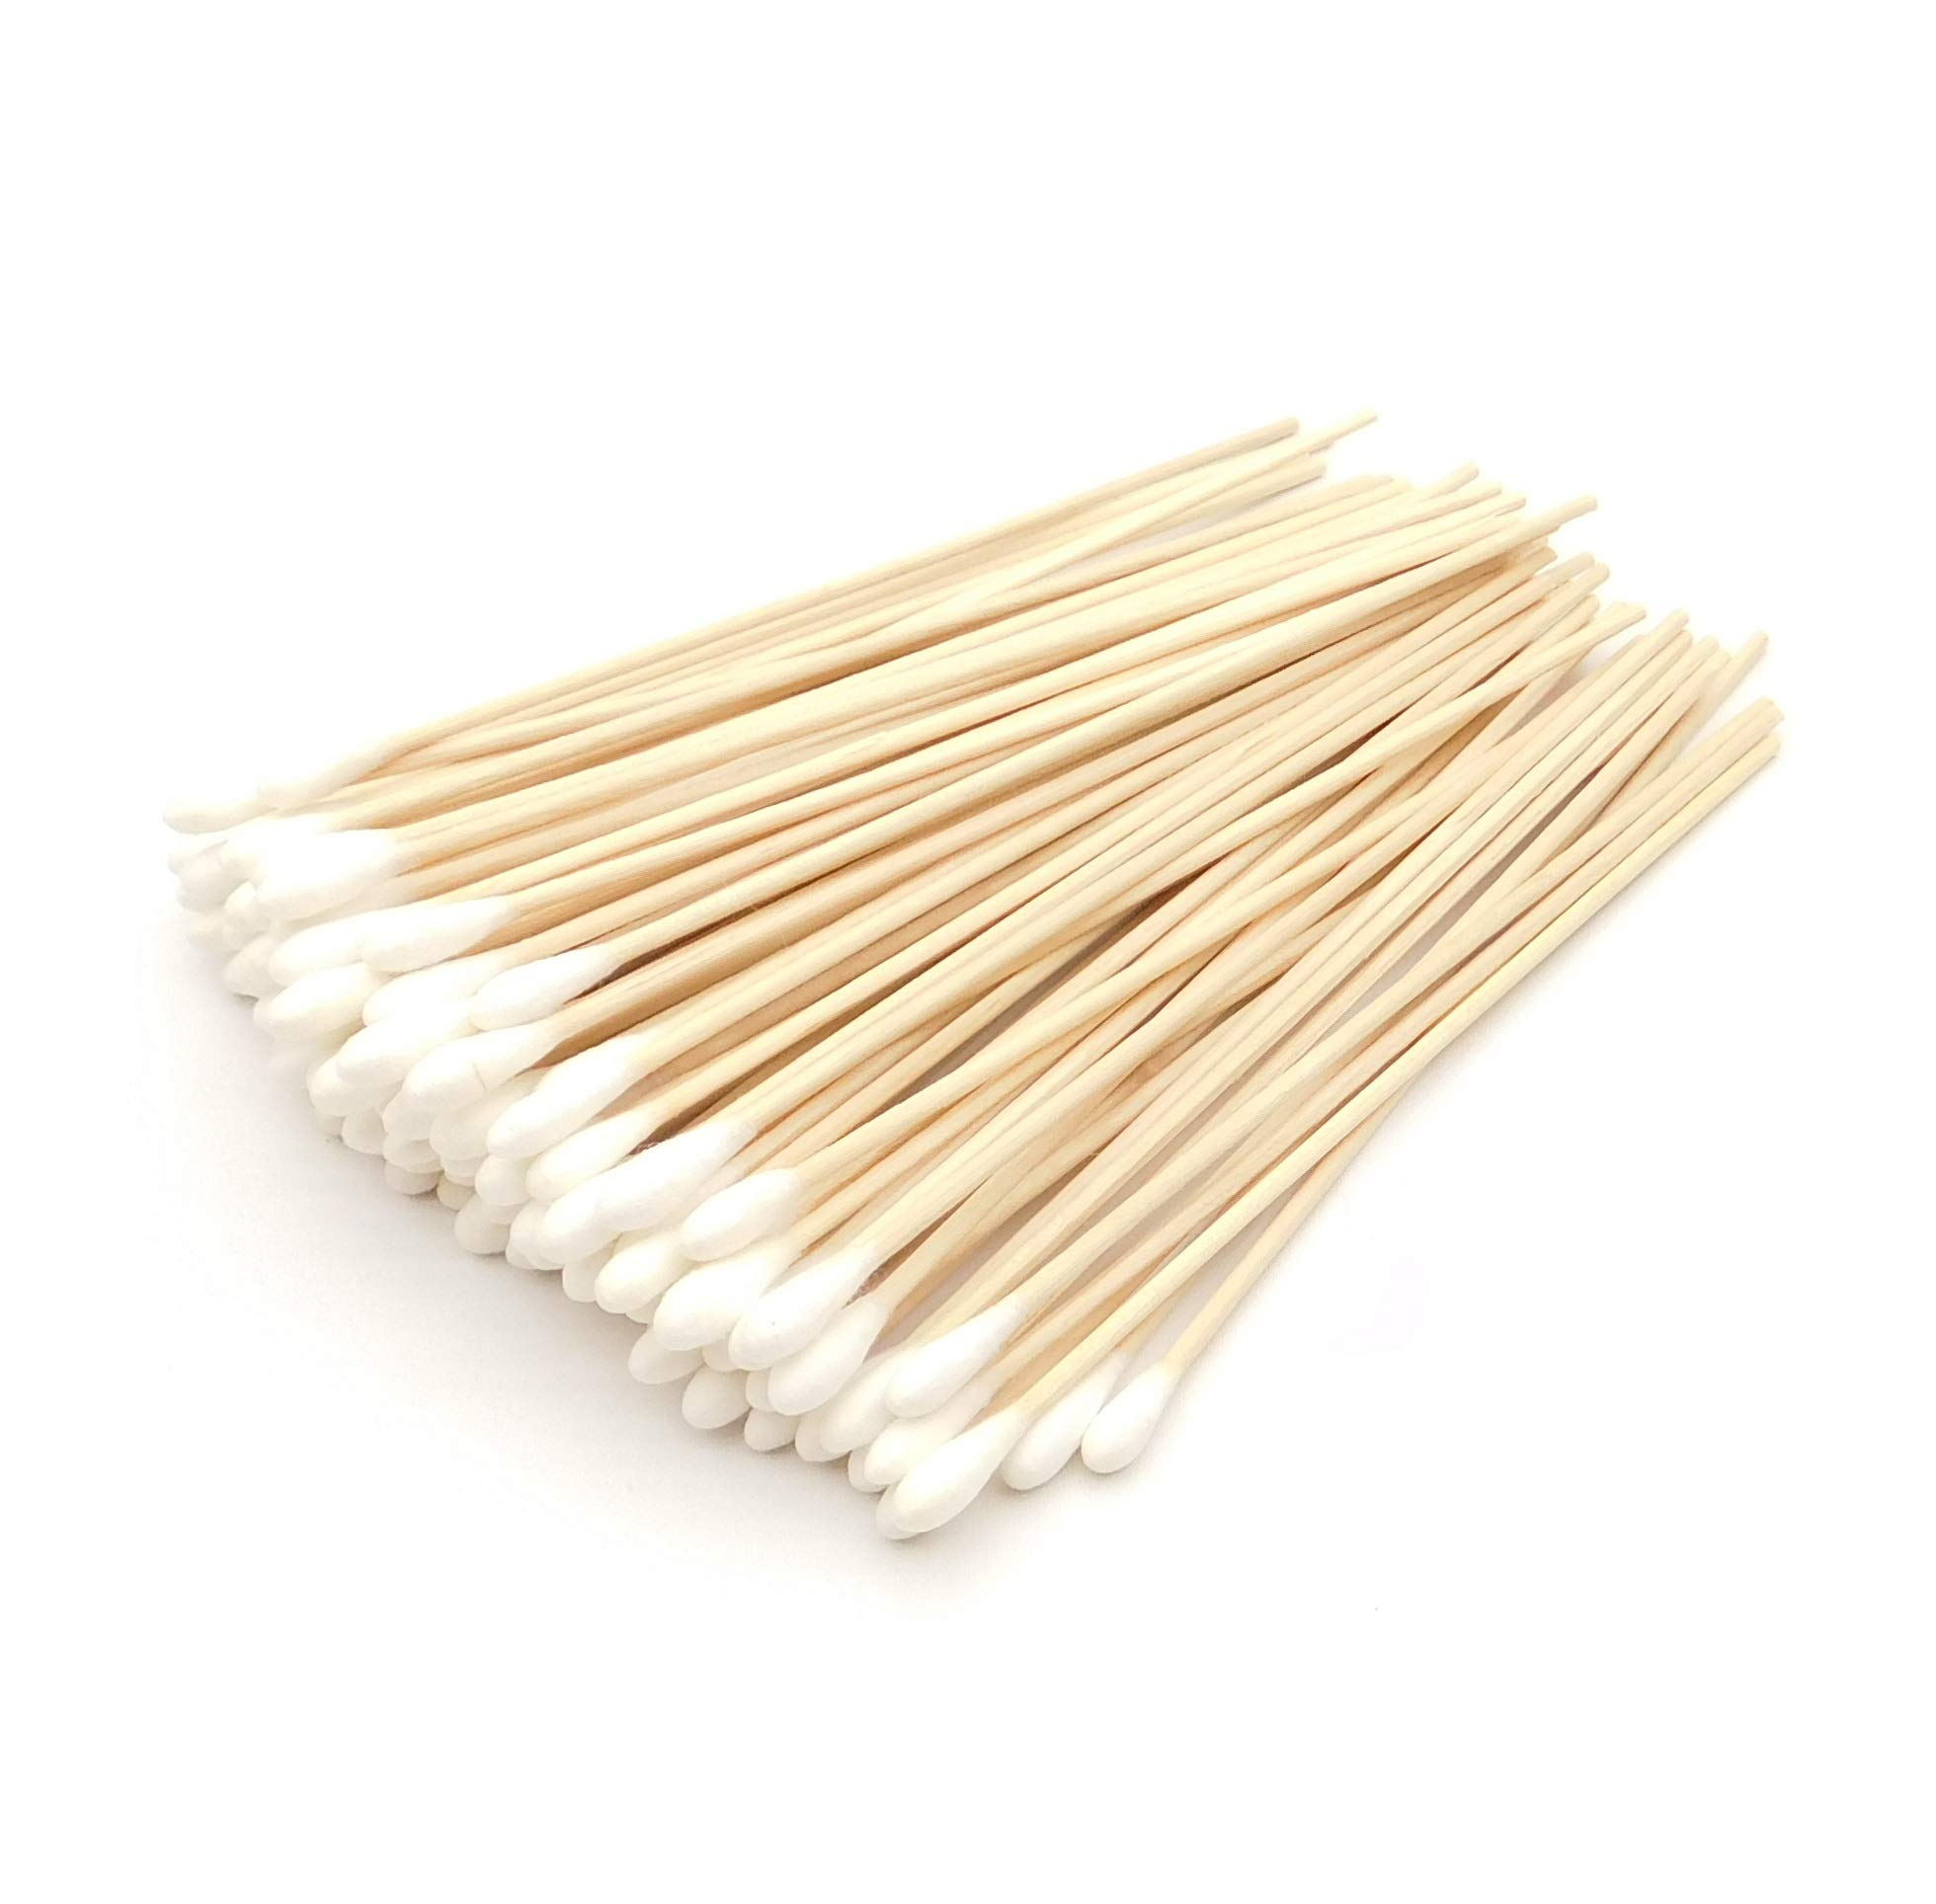 HEALTHCARE SUPPLIER 6'' Wooden Shaft Cotton Tipped Applicators (1000 Count) - Professional Dentist Office Supplies